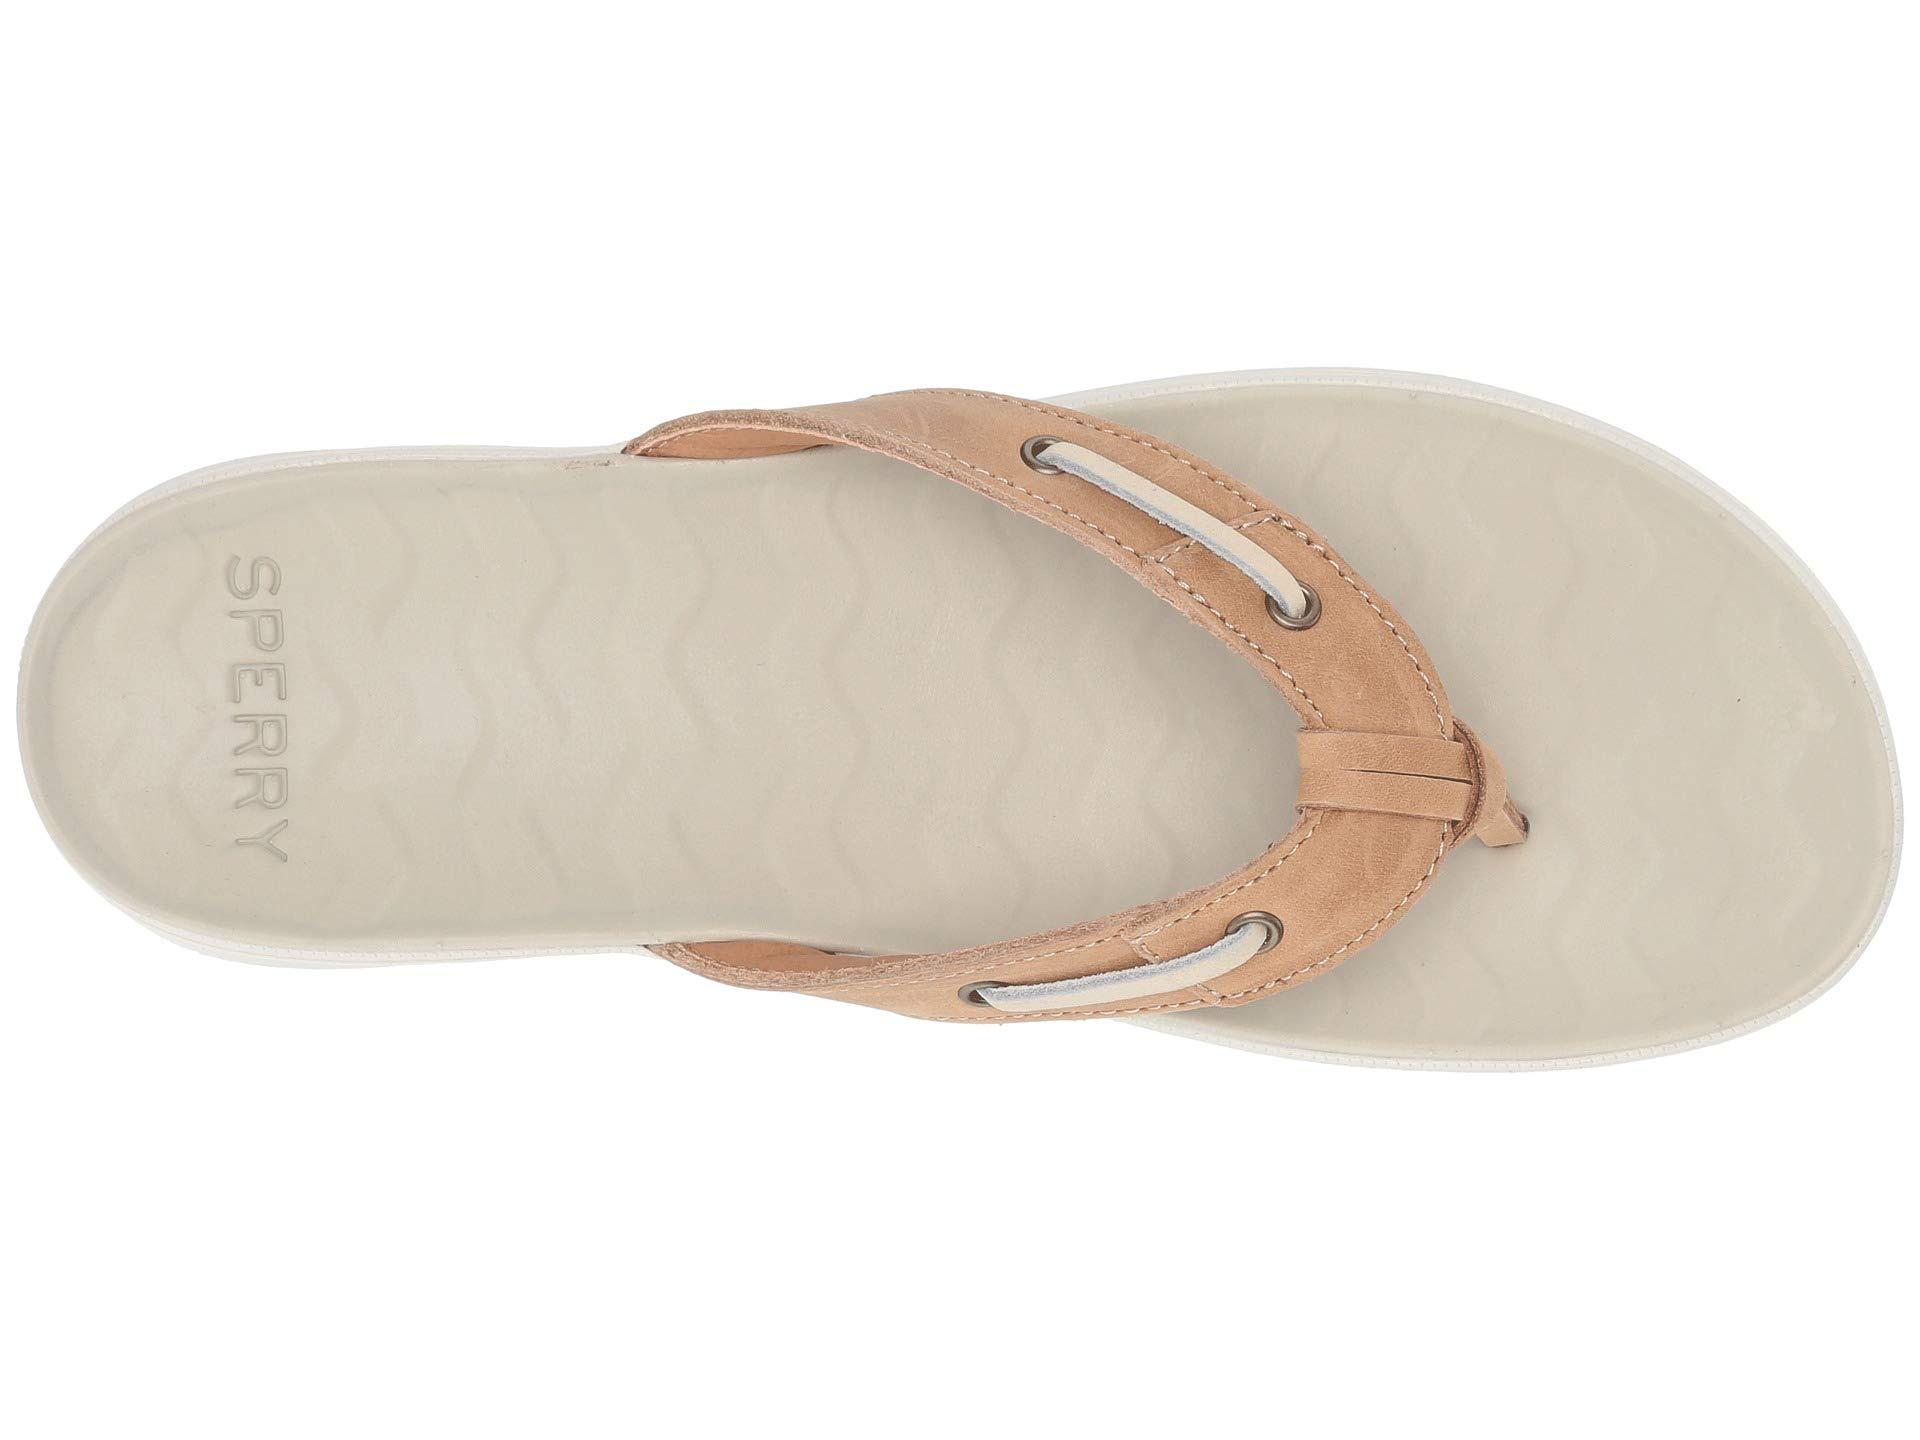 b62fa786c56d Sperry Top-Sider - Multicolor Adriatic Thong Skip Lace Leather (platinum)  Women s Sandals. View fullscreen